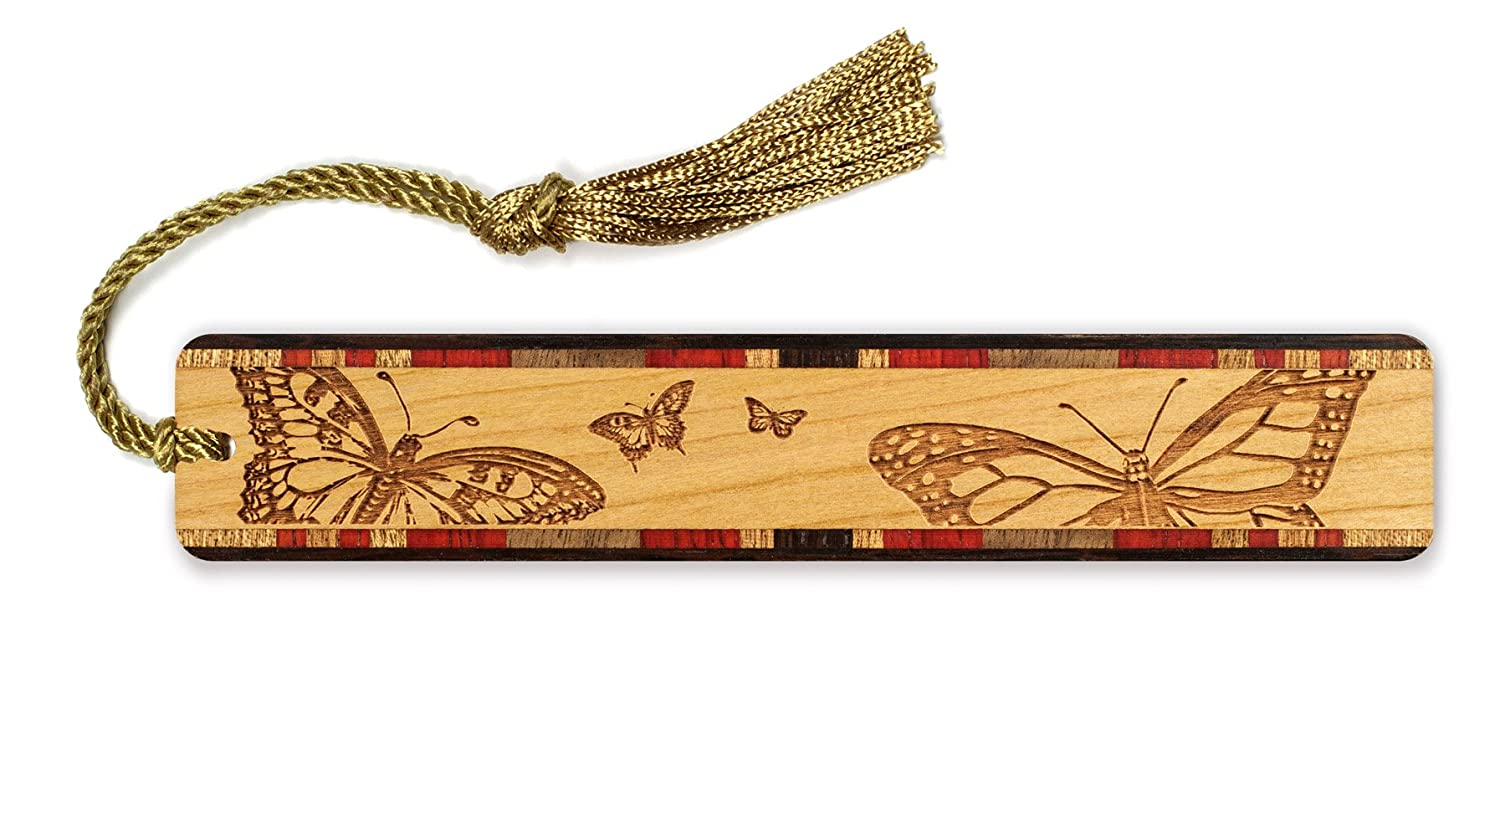 Butterfly and Flower Engraved Colorful Wooden Bookmark with Tassel Mitercraft